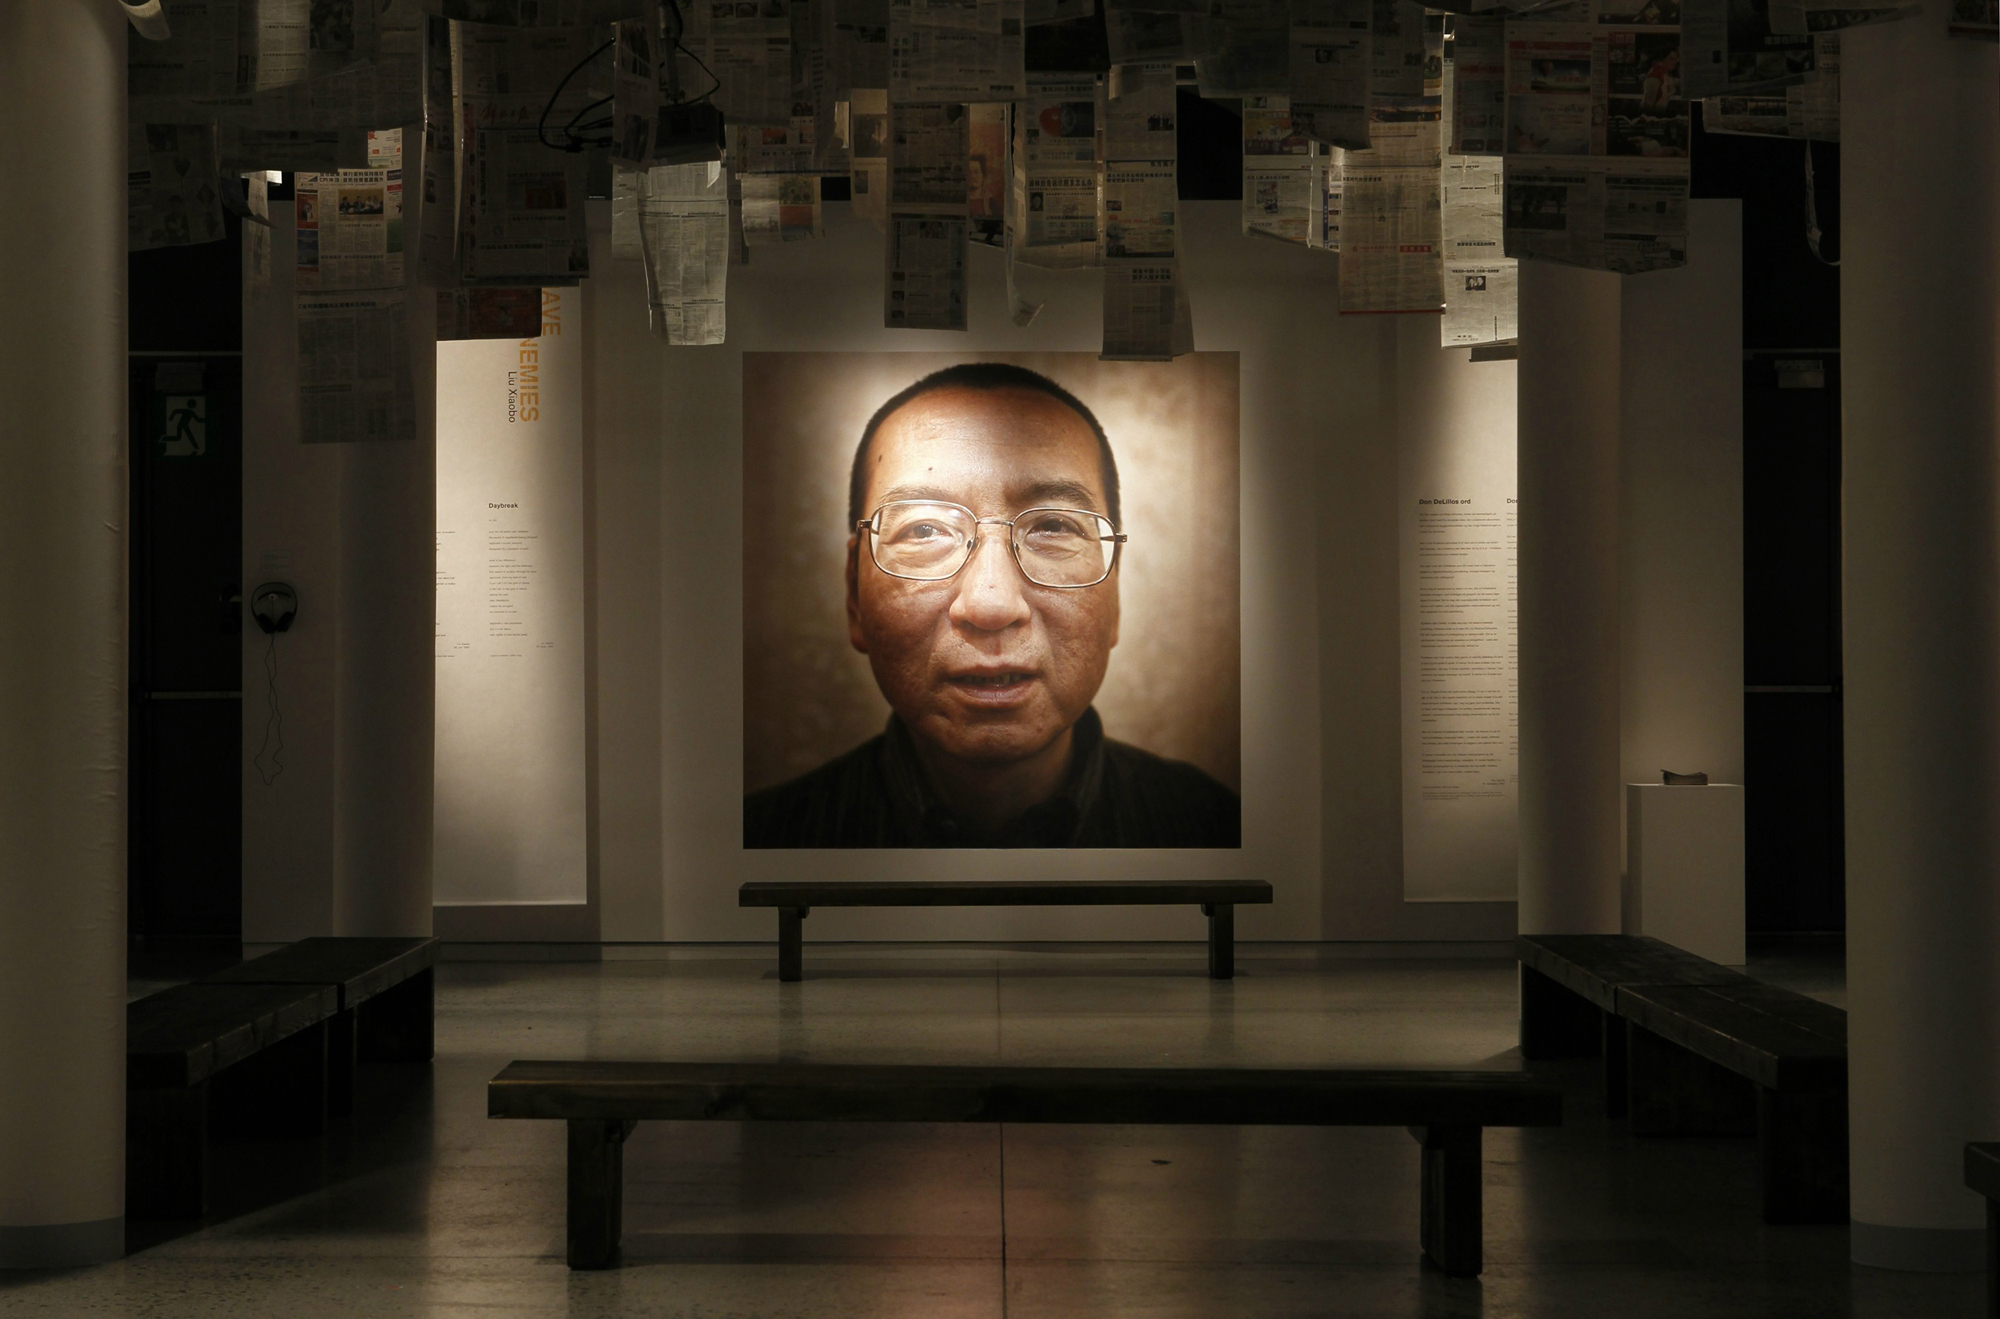 A picture of 2010 Nobel Peace Laureate Liu Xiaobo is seen at an exhibition at the Nobel Peace Center in Oslo in 2010.